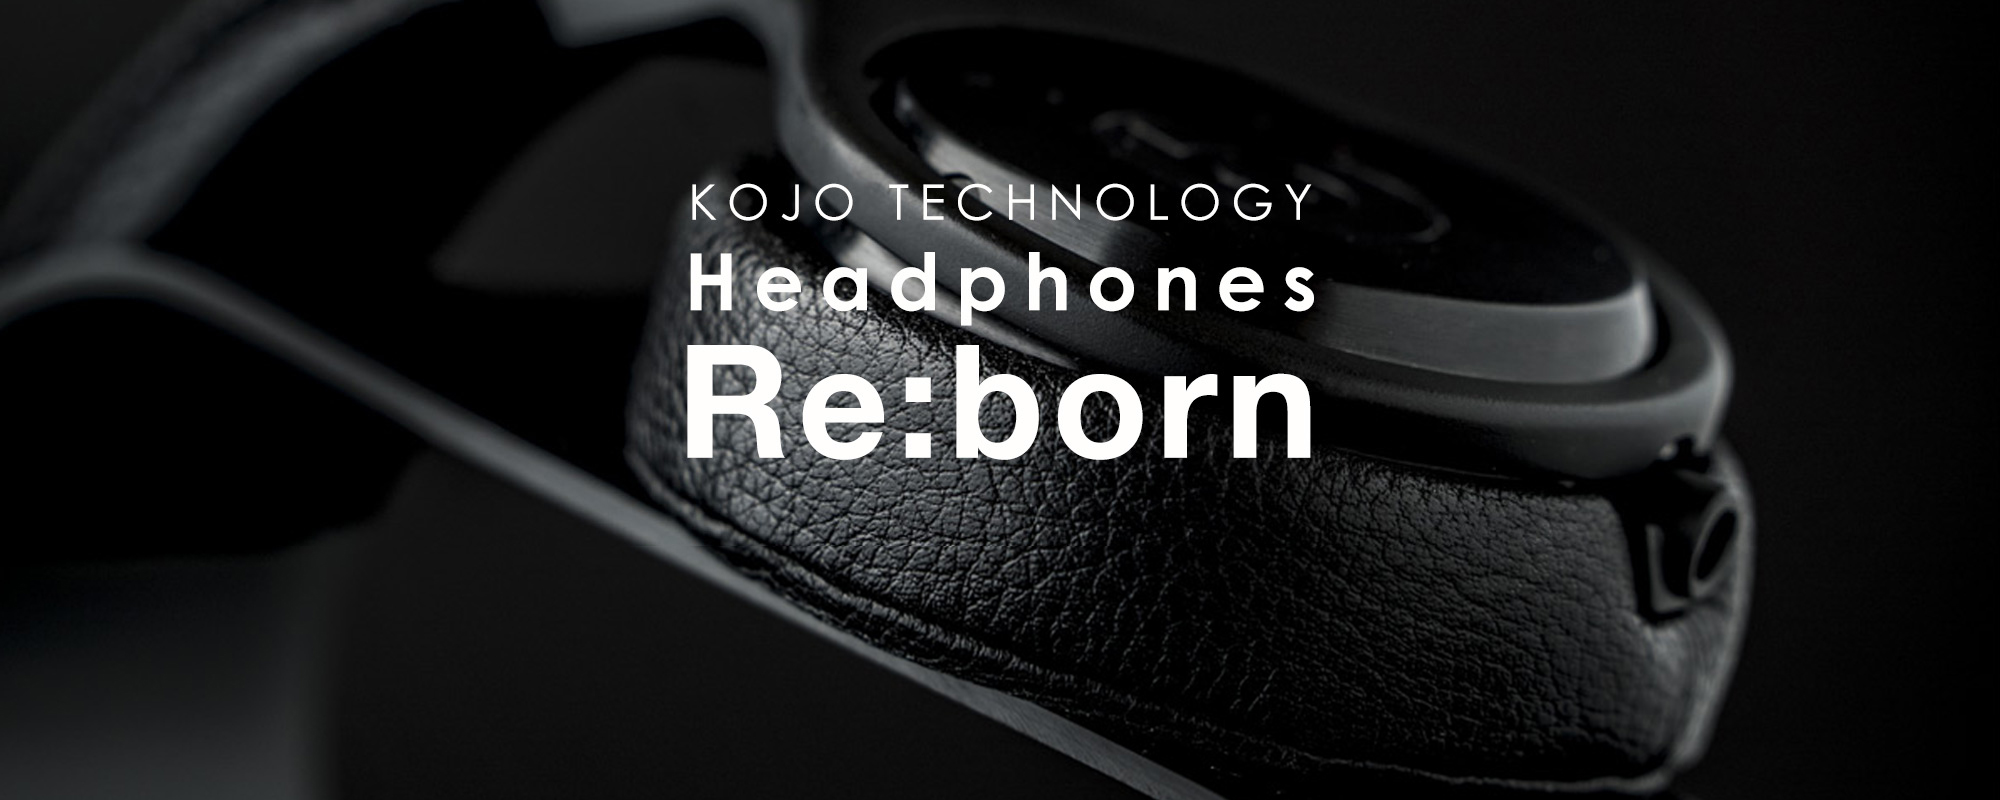 headphone reborn